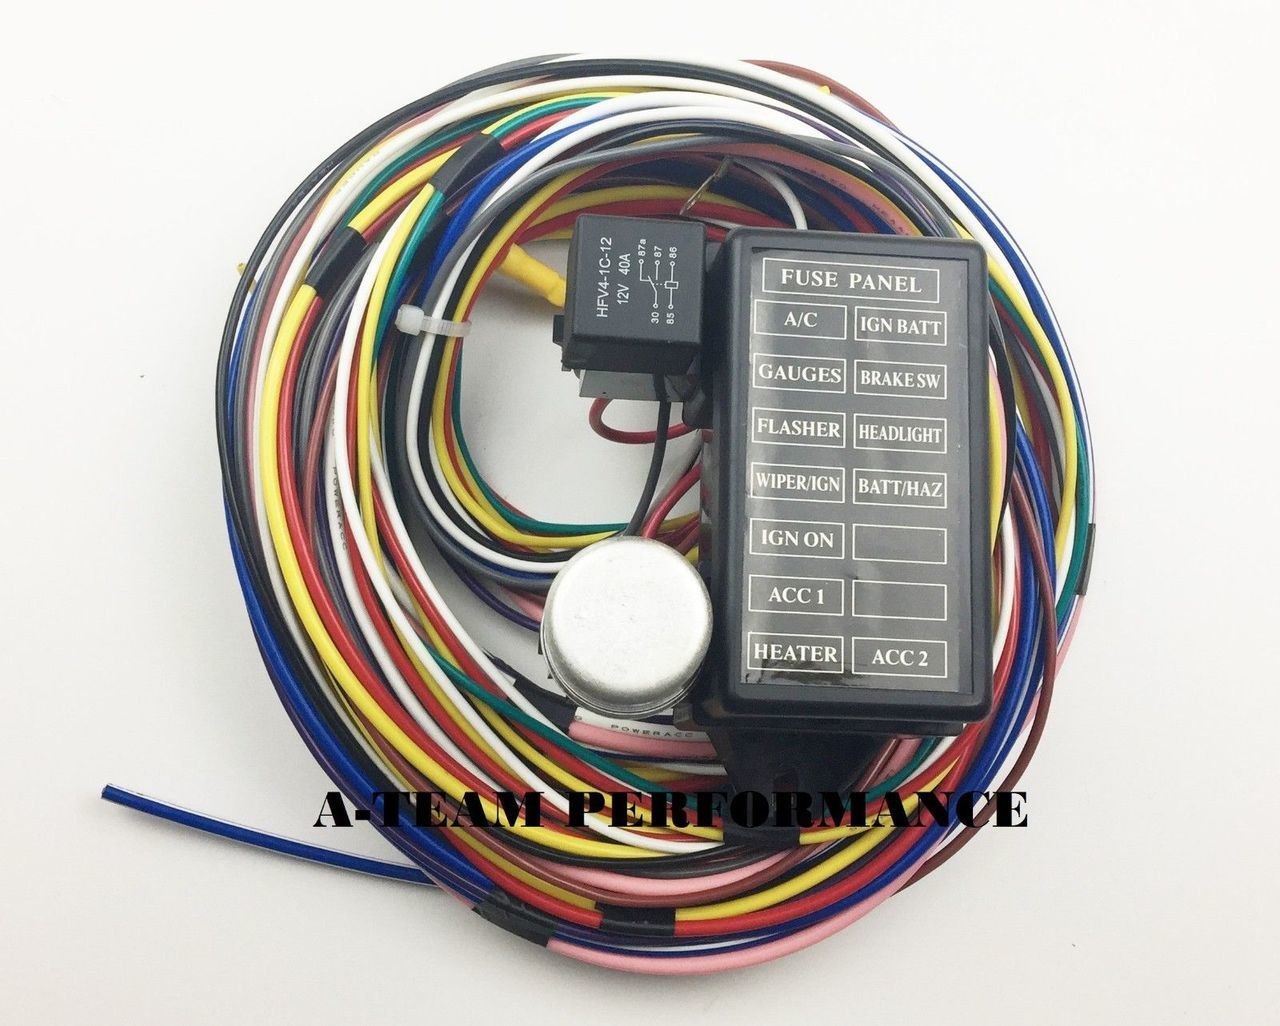 12 circuit universal wire harness muscle car hot rod street rod new xl wires swpp swperformanceparts [ 1280 x 1026 Pixel ]